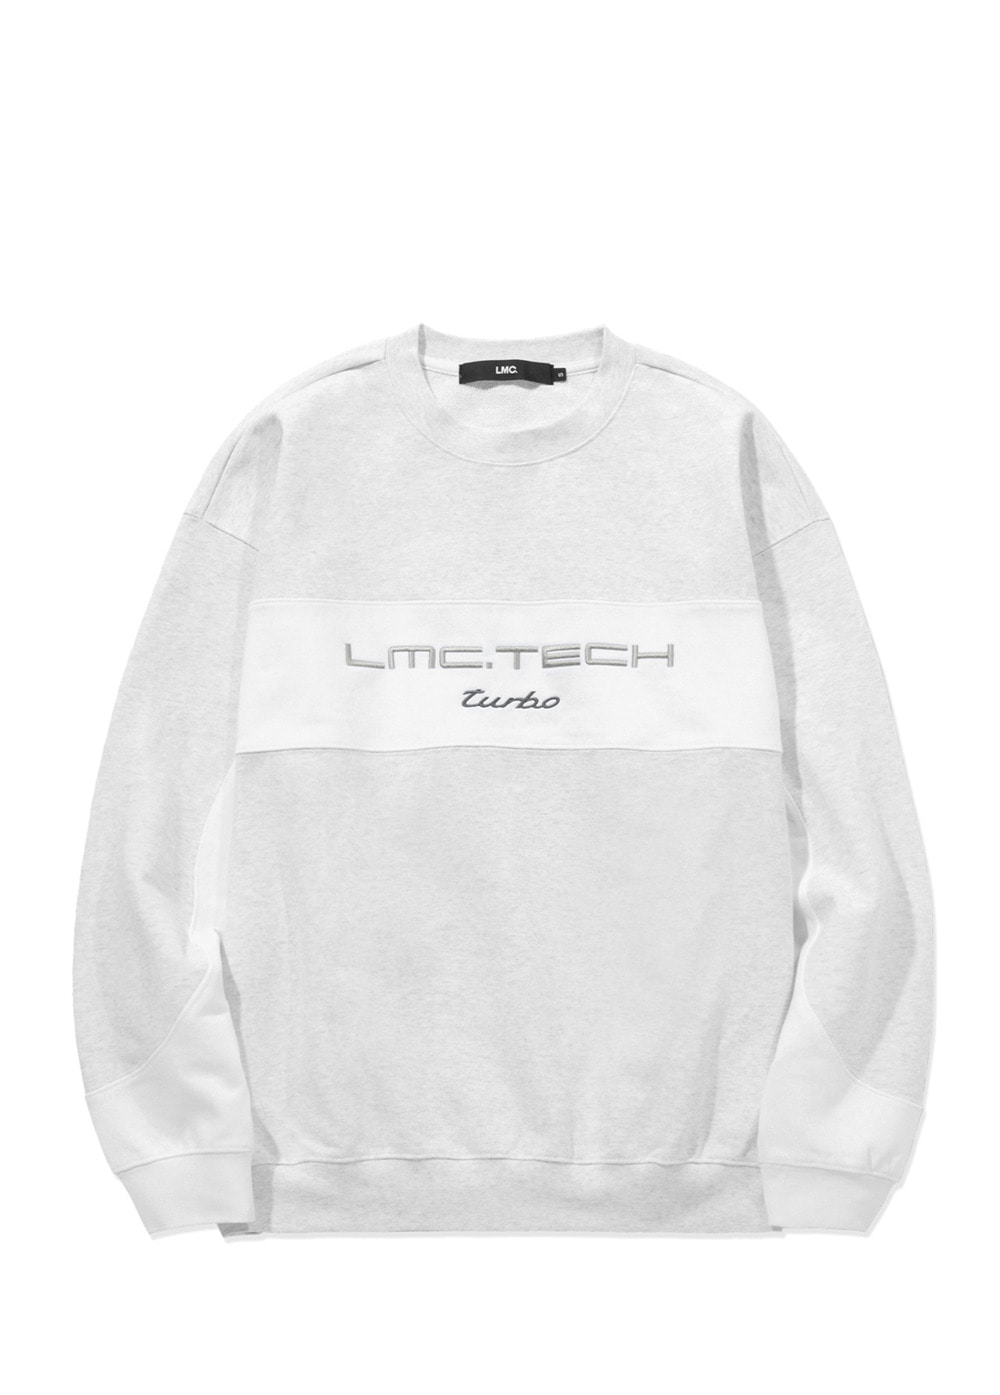 LMC TECH OVERSIZED SWEATSHIRT lt. heather gray